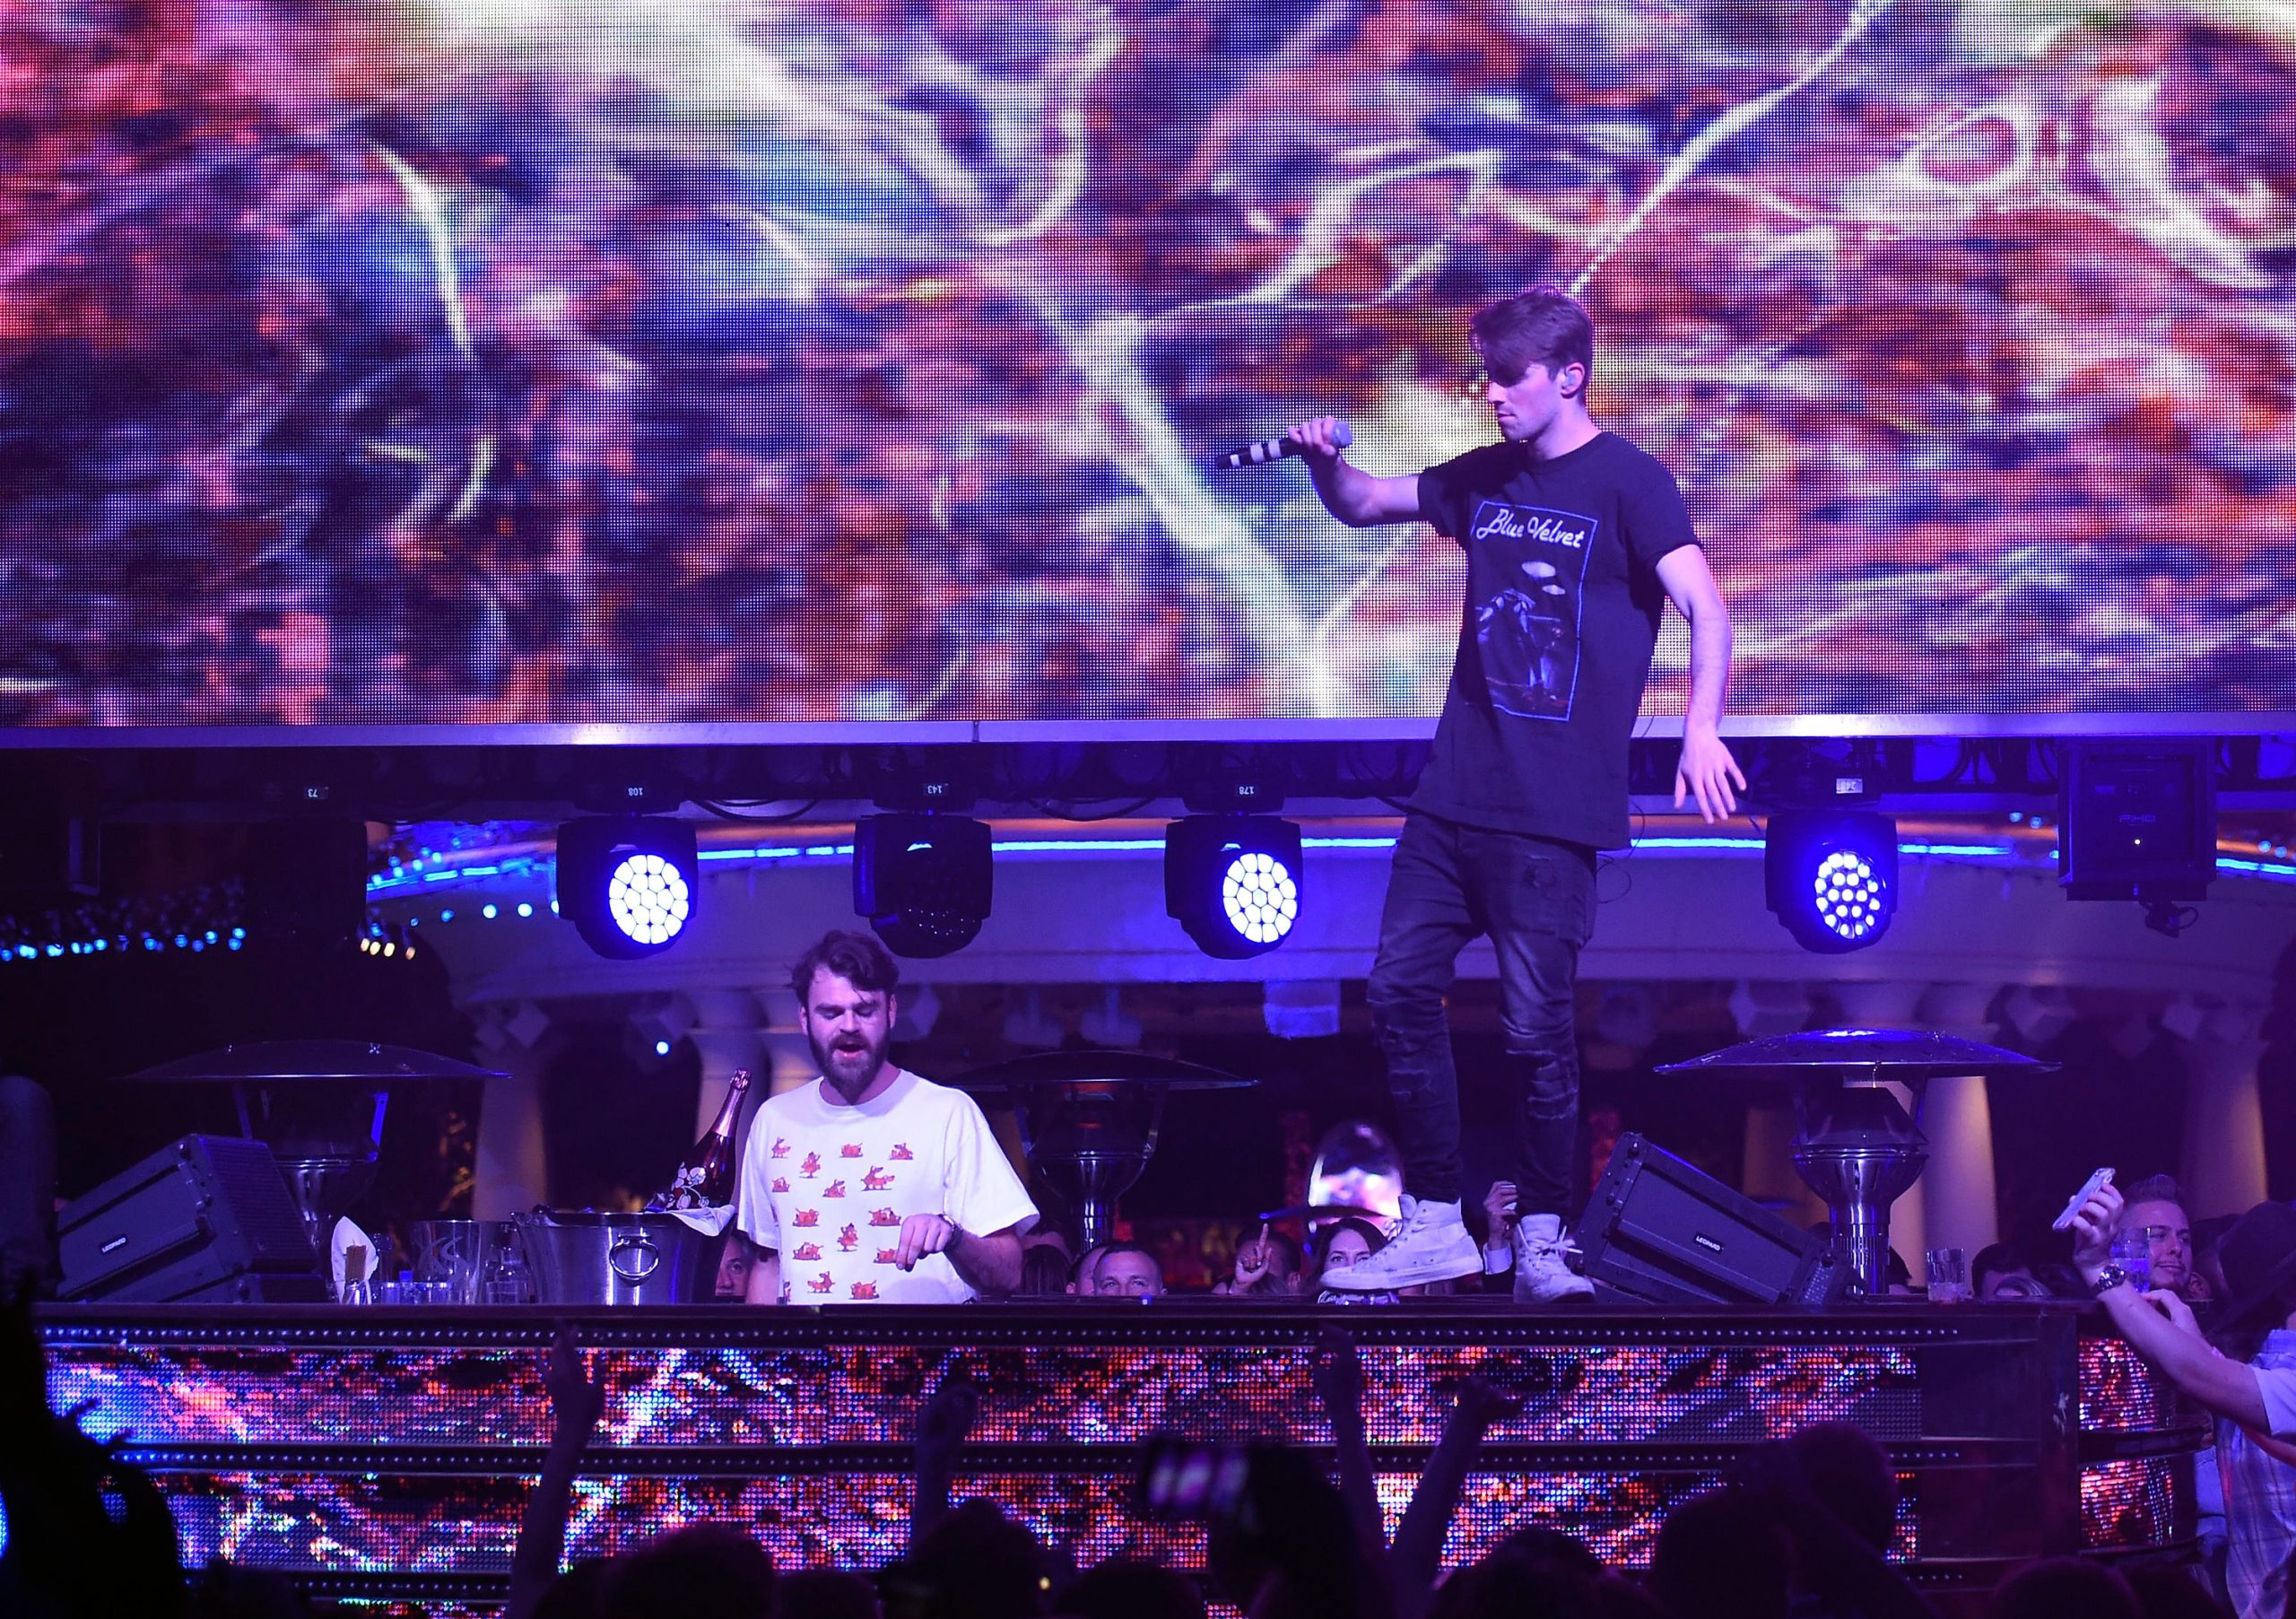 Are the Chainsmokers the Nickelback of EDM? Discuss!